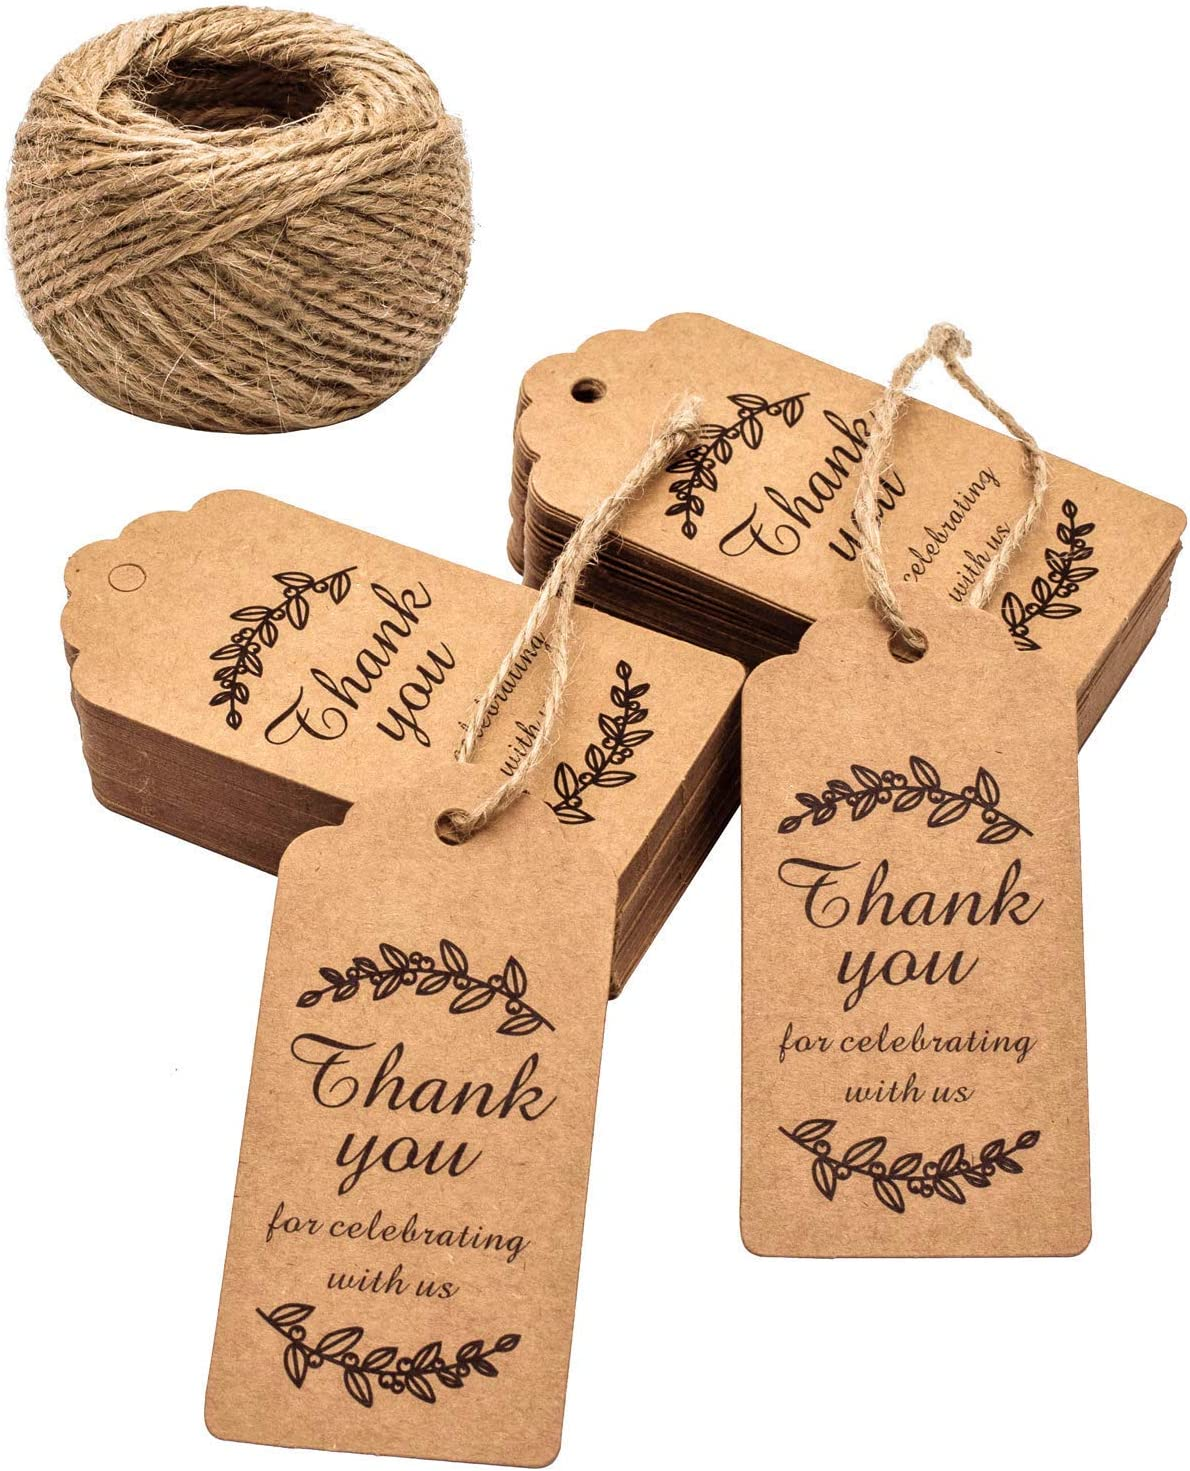 White 6.5x5CM Thank You Tags,100 PCS Heart ShapeThank You Printed Kraft Paper Gift Tags,White Wedding Favors Tags with 30M Jute Twine for DIY Crafts Hang Label